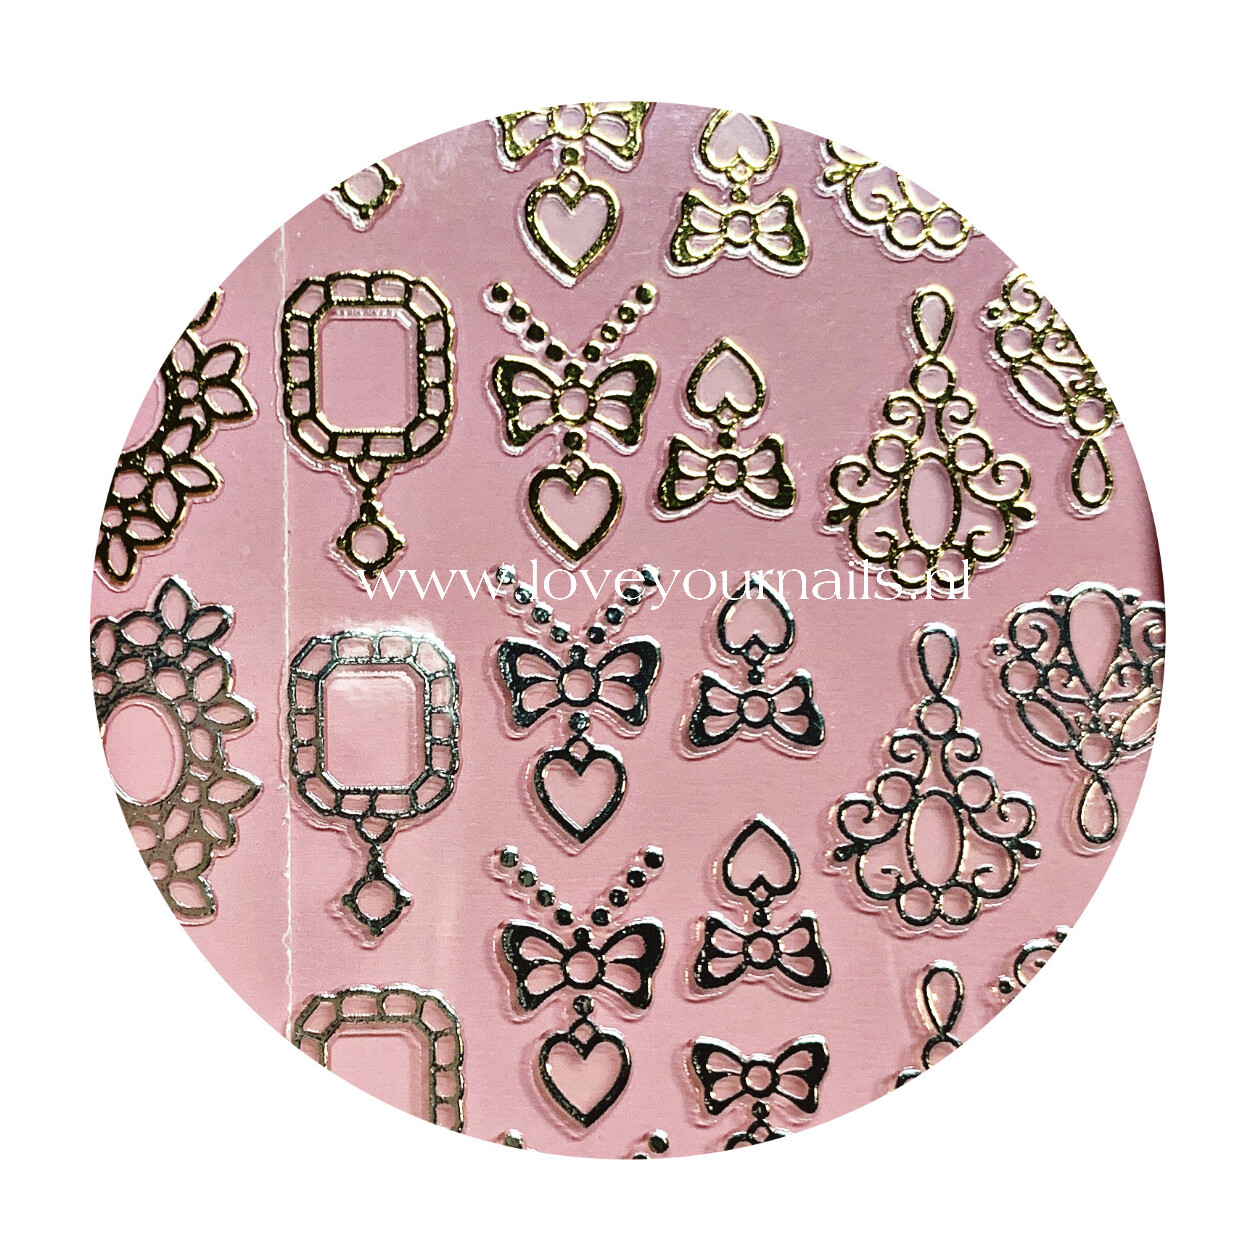 Charmicon Silicone Stickers Jewelry Gold #4